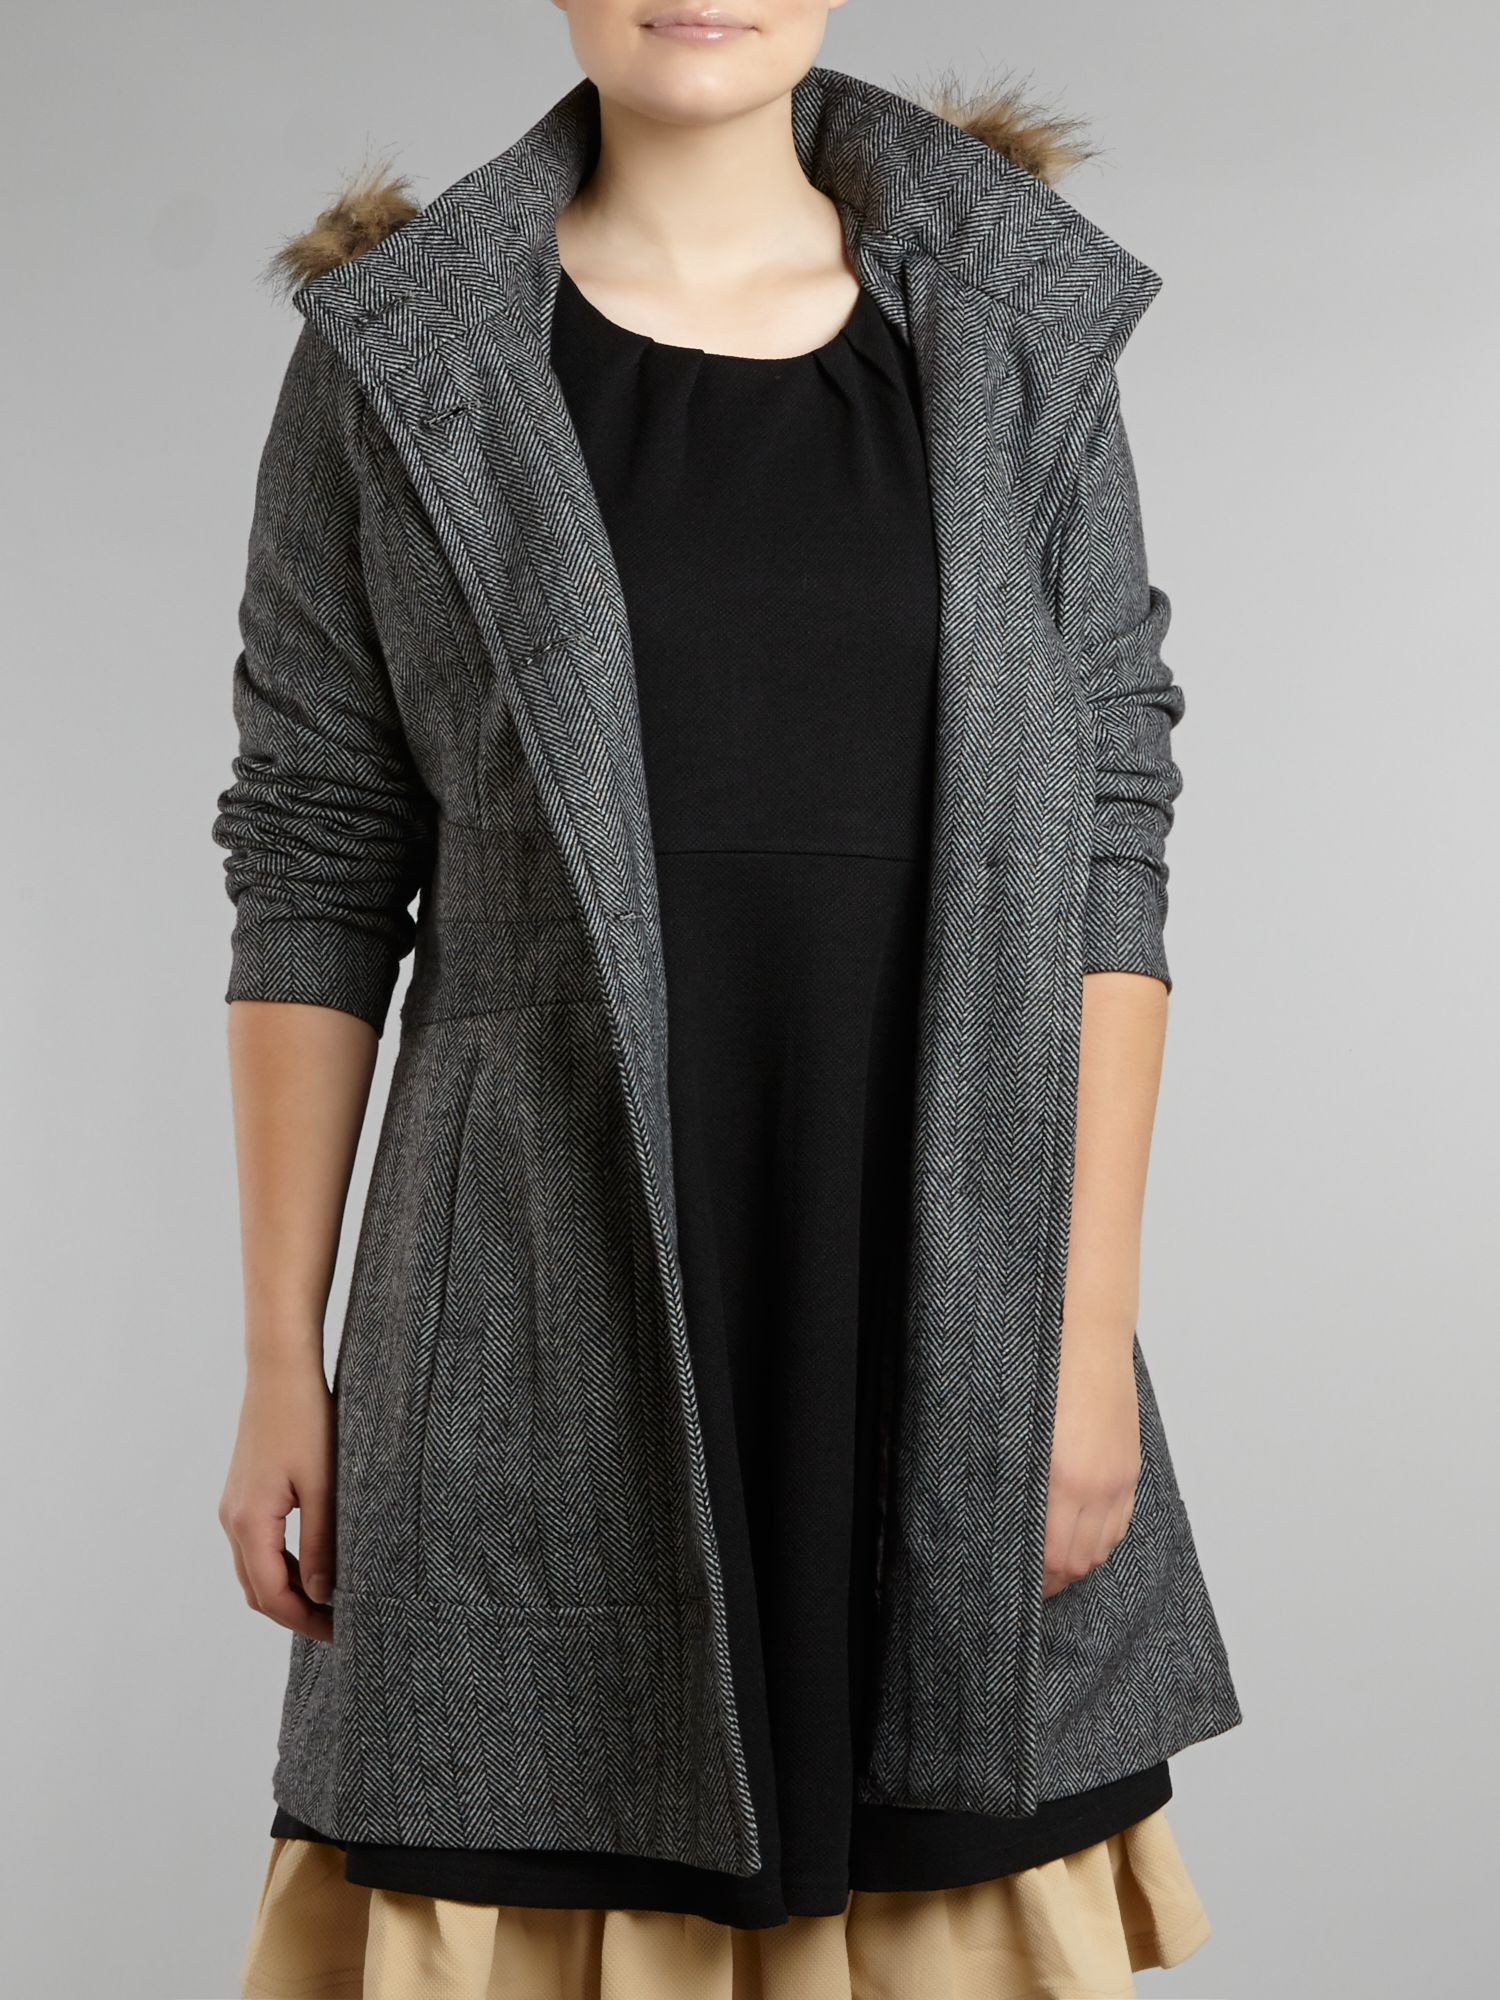 Herringbone hooded jacket